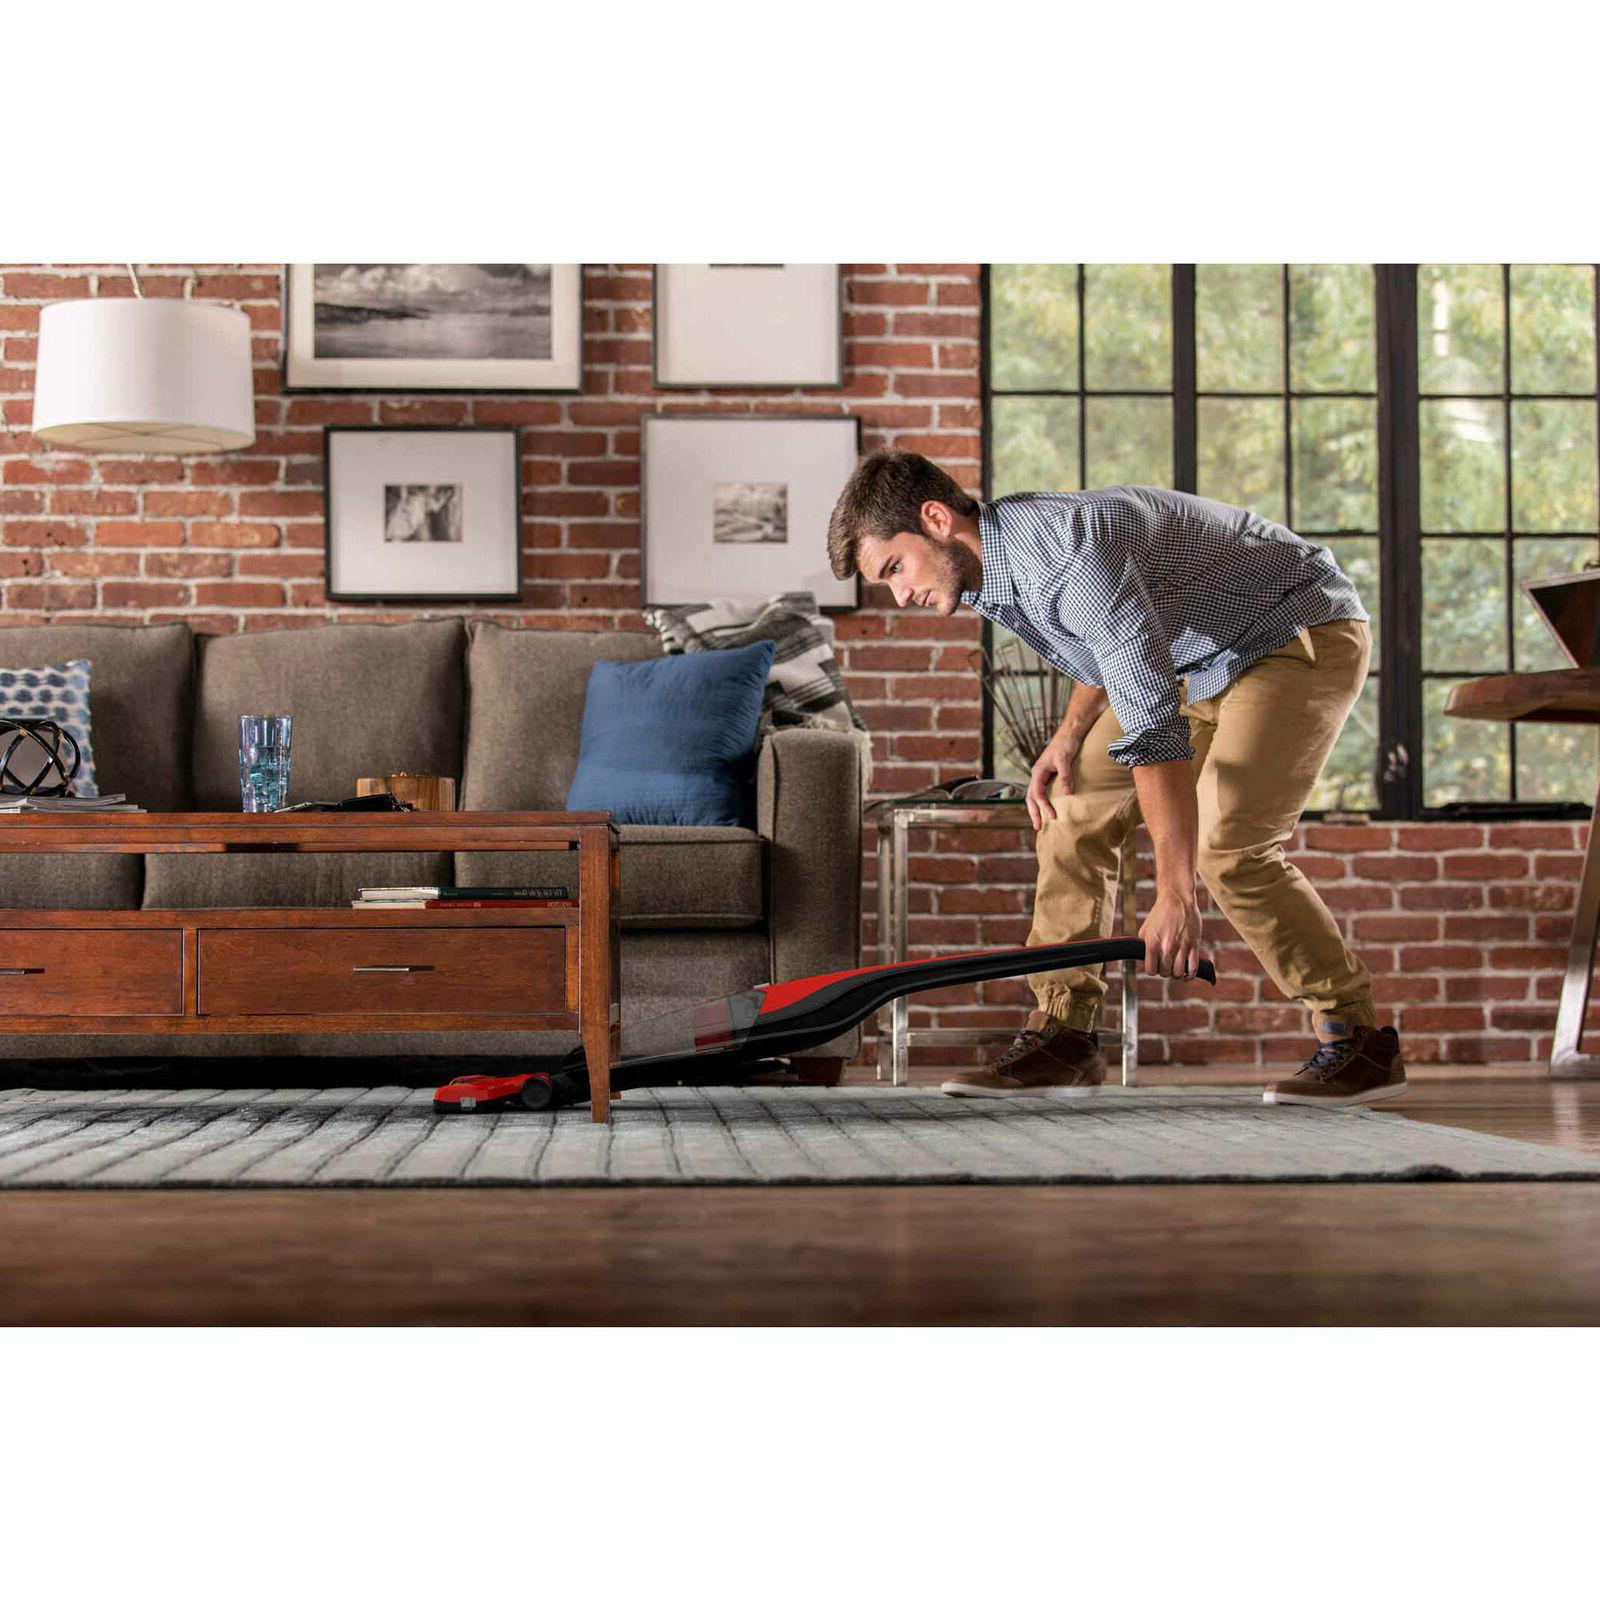 Cordedless Vacuum Carpets and Home Commercial